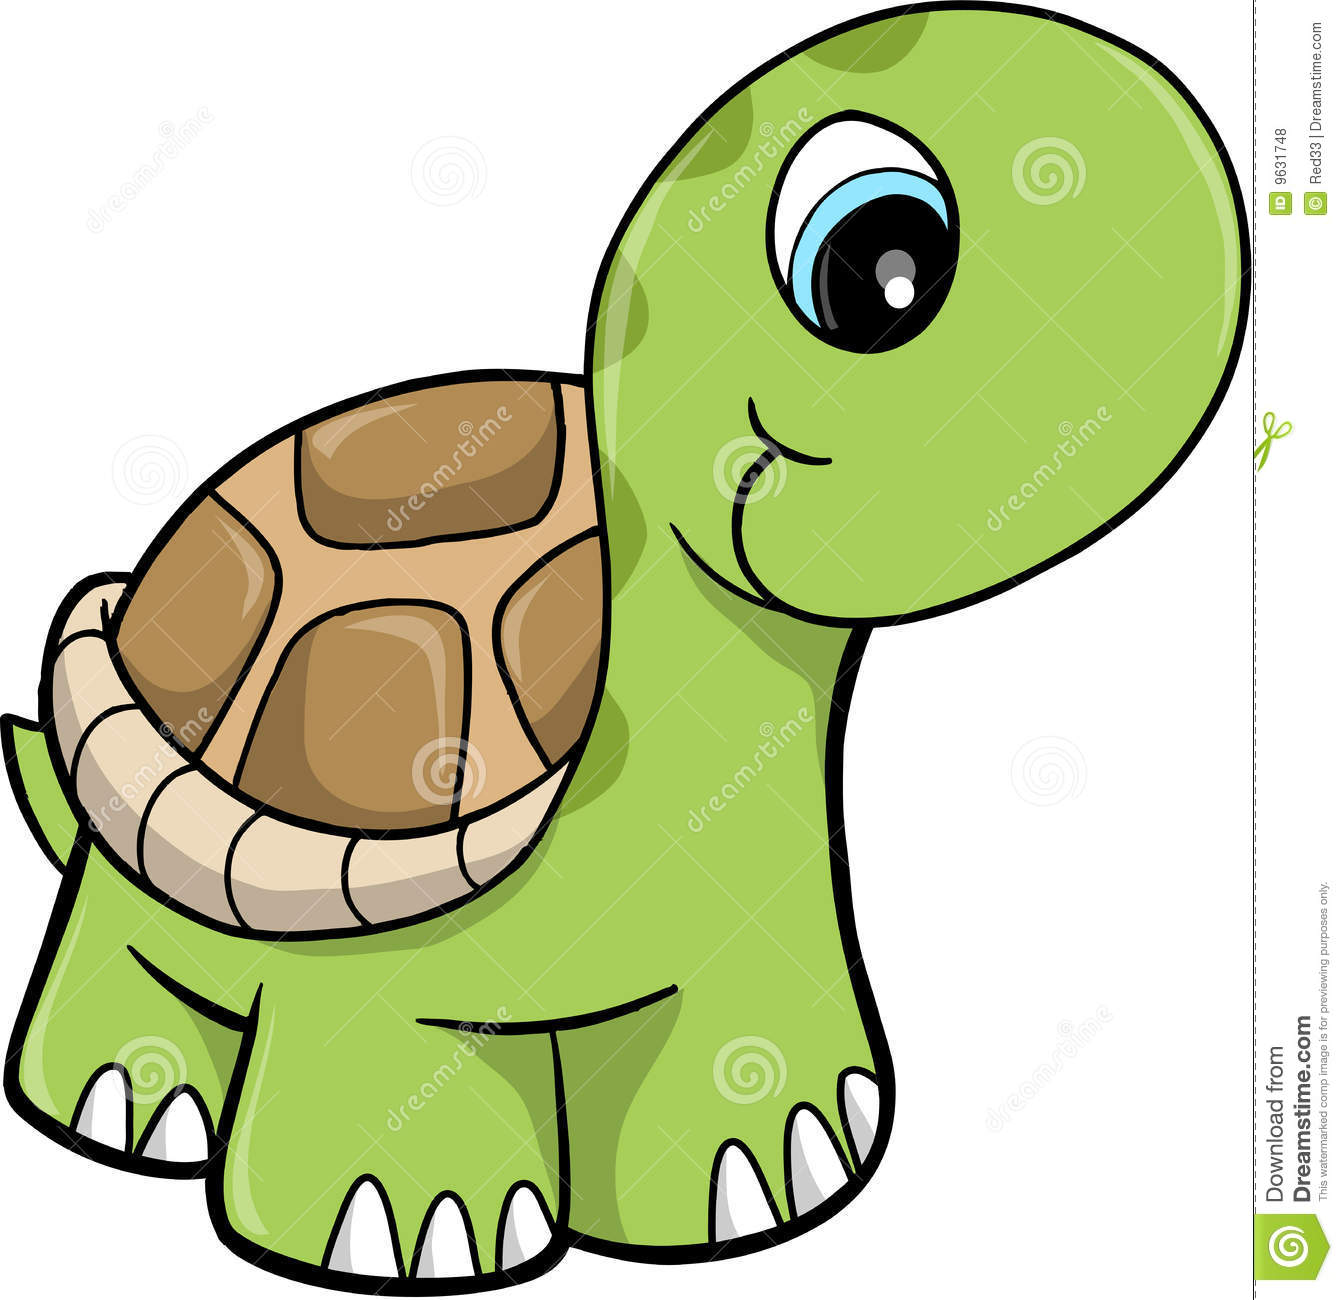 Turtle Clipart, Download Free Clip Art on Clipart Bay.